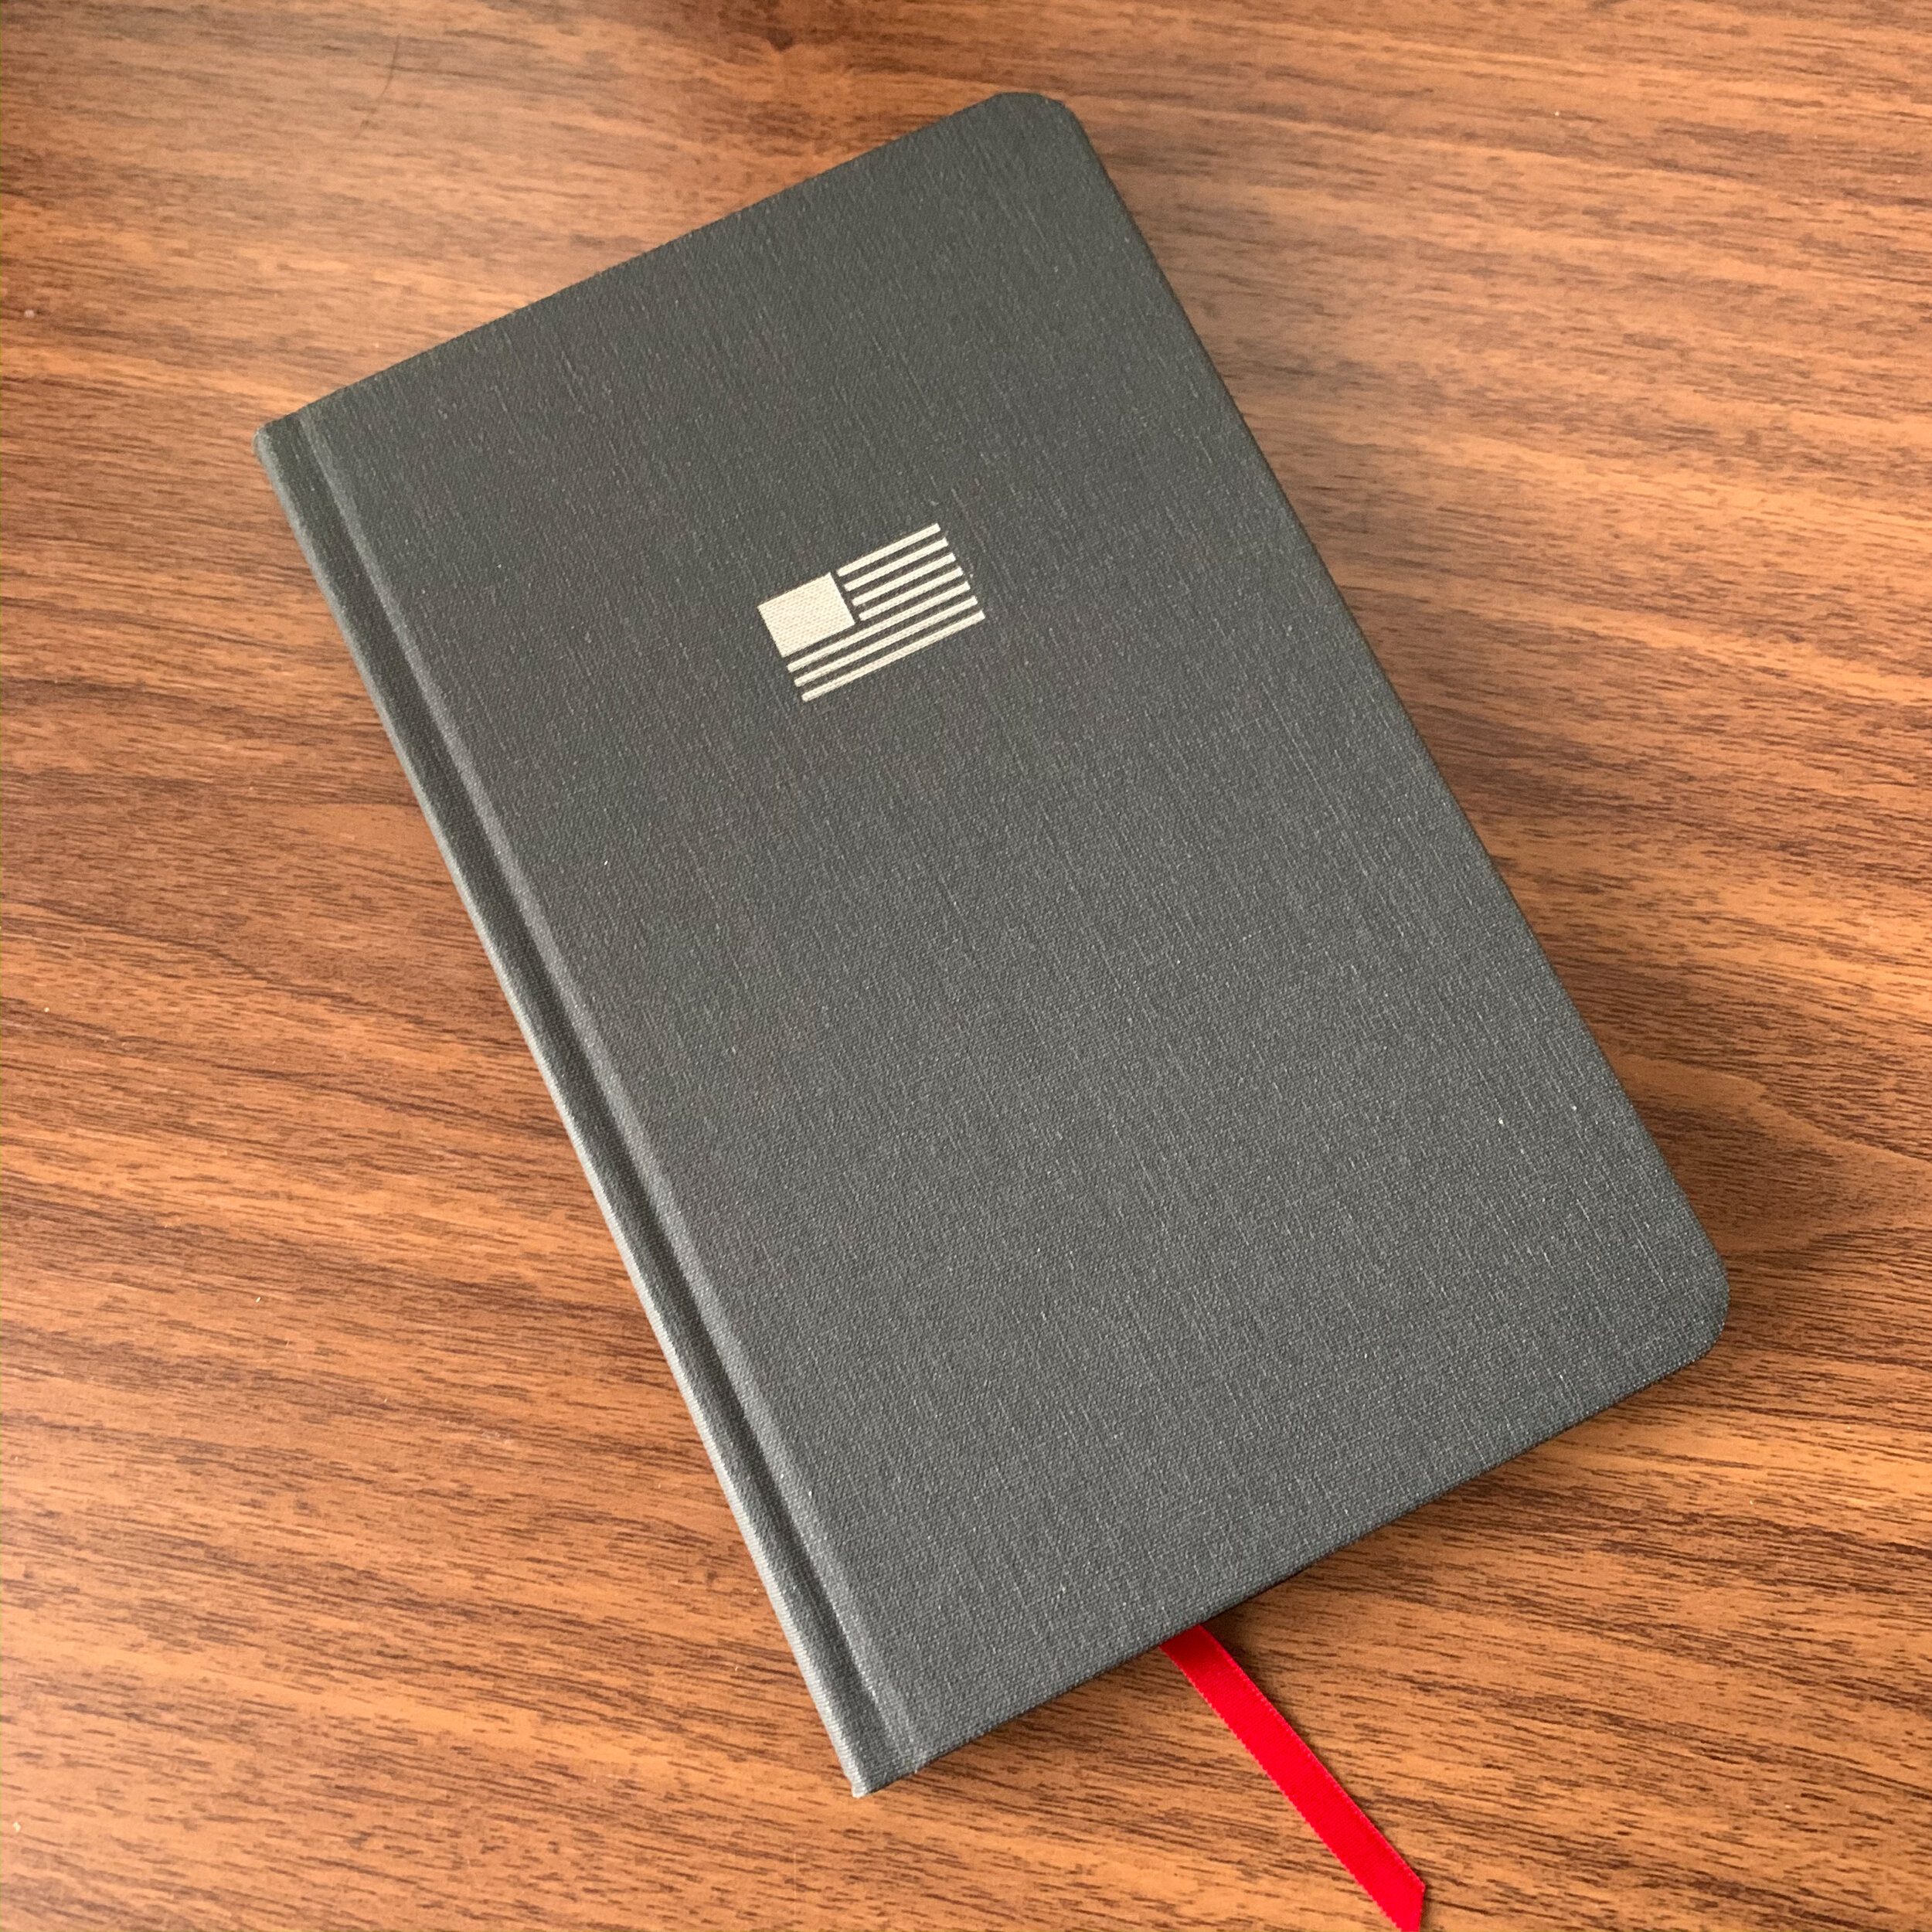 Planner & Notebook Focus cover image